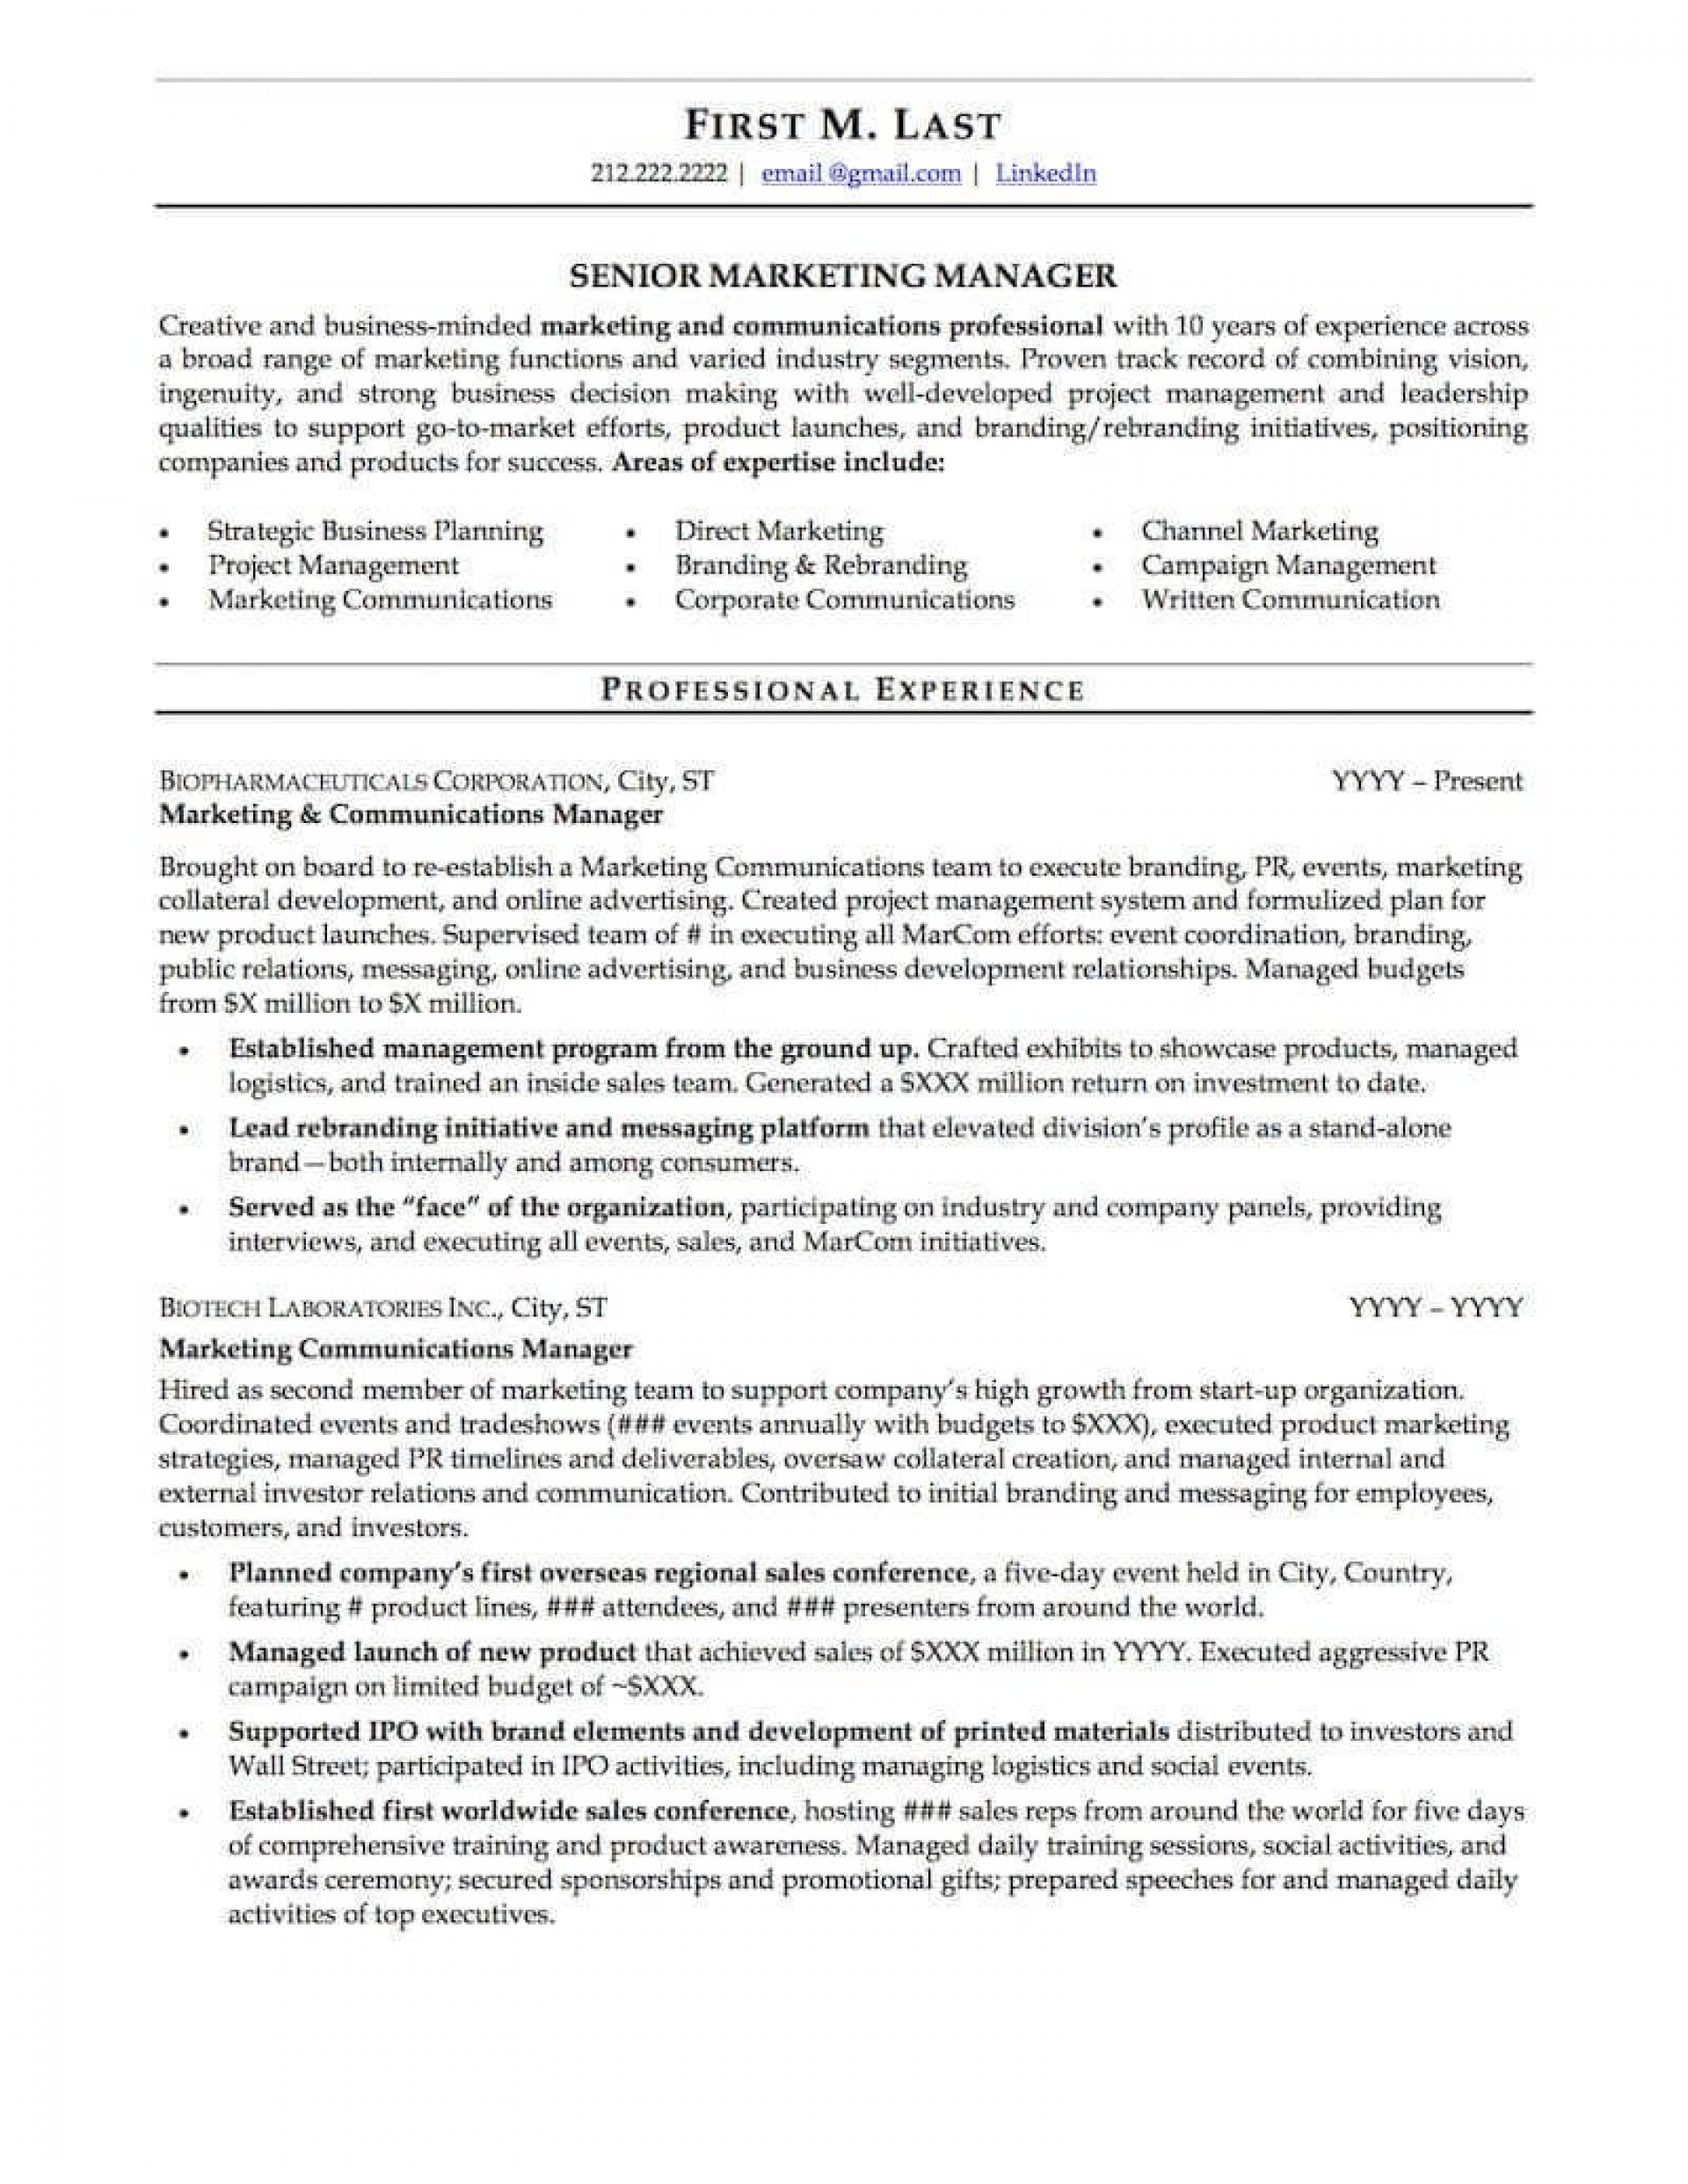 004 Phenomenal Professional Resume Template Example Photo  Examples Layout Cv Writing Format1920